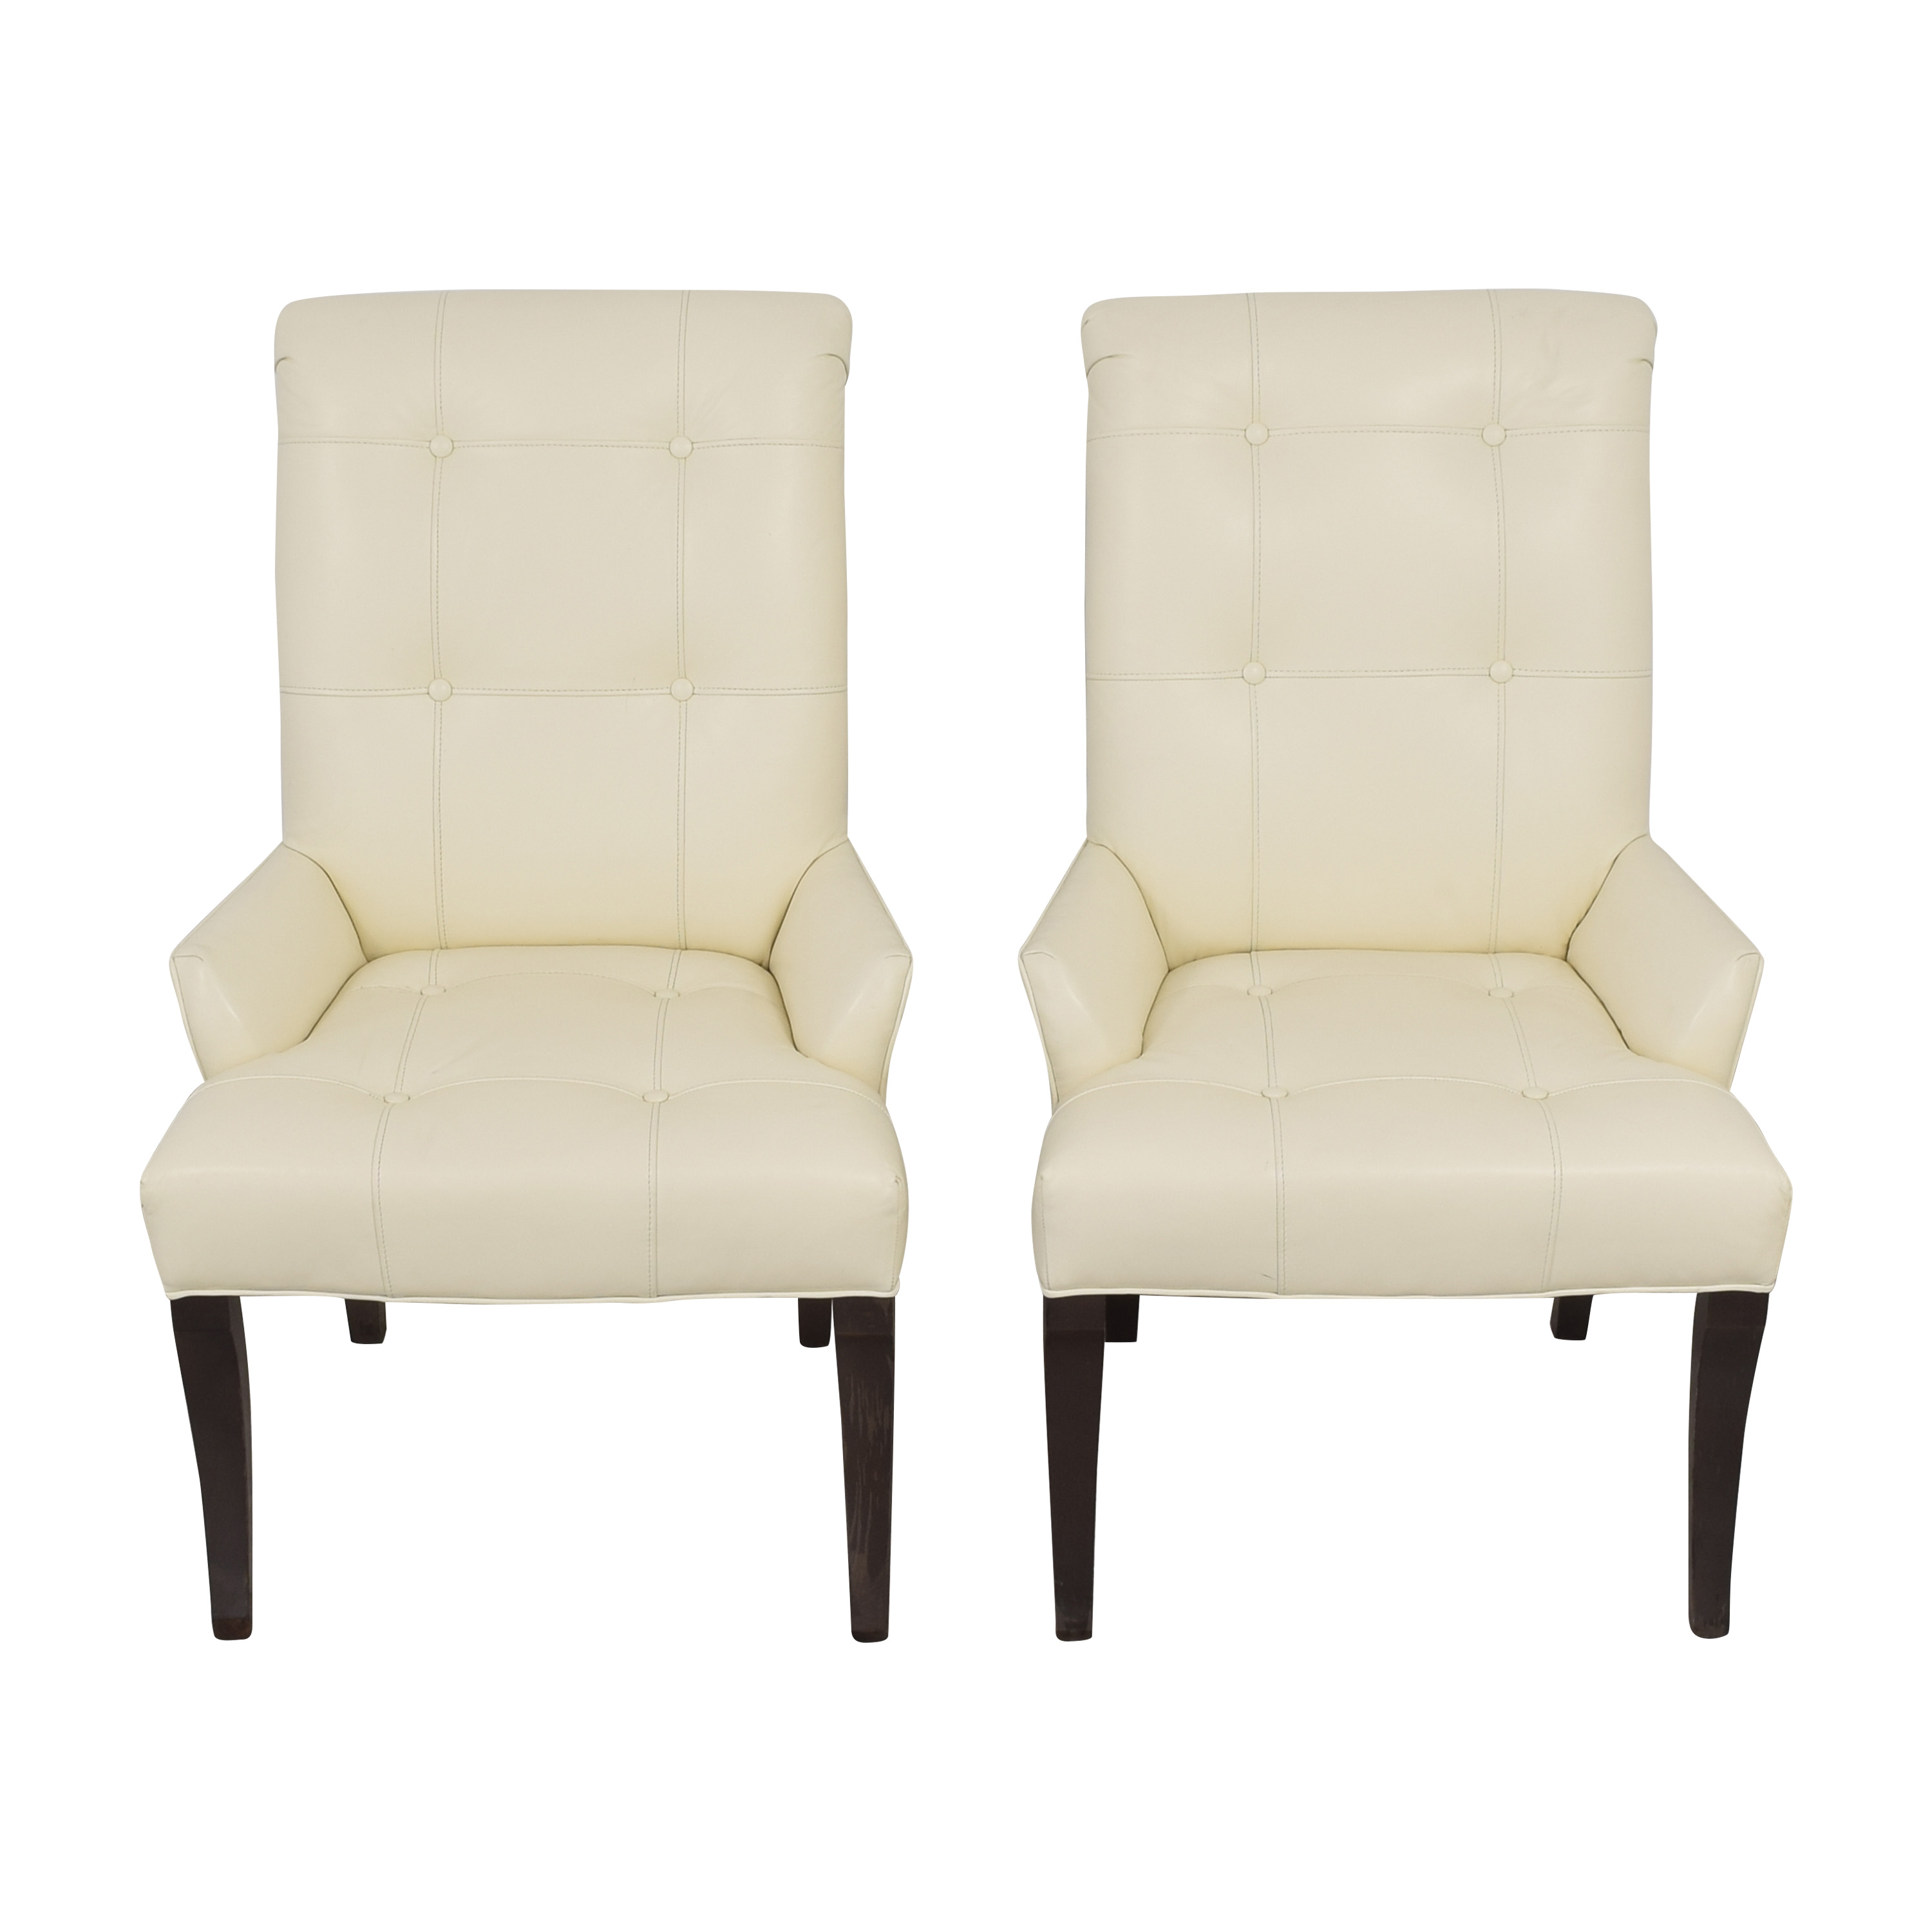 Ethan Allen Ethan Allen Verlaine Dining Armchairs Dining Chairs